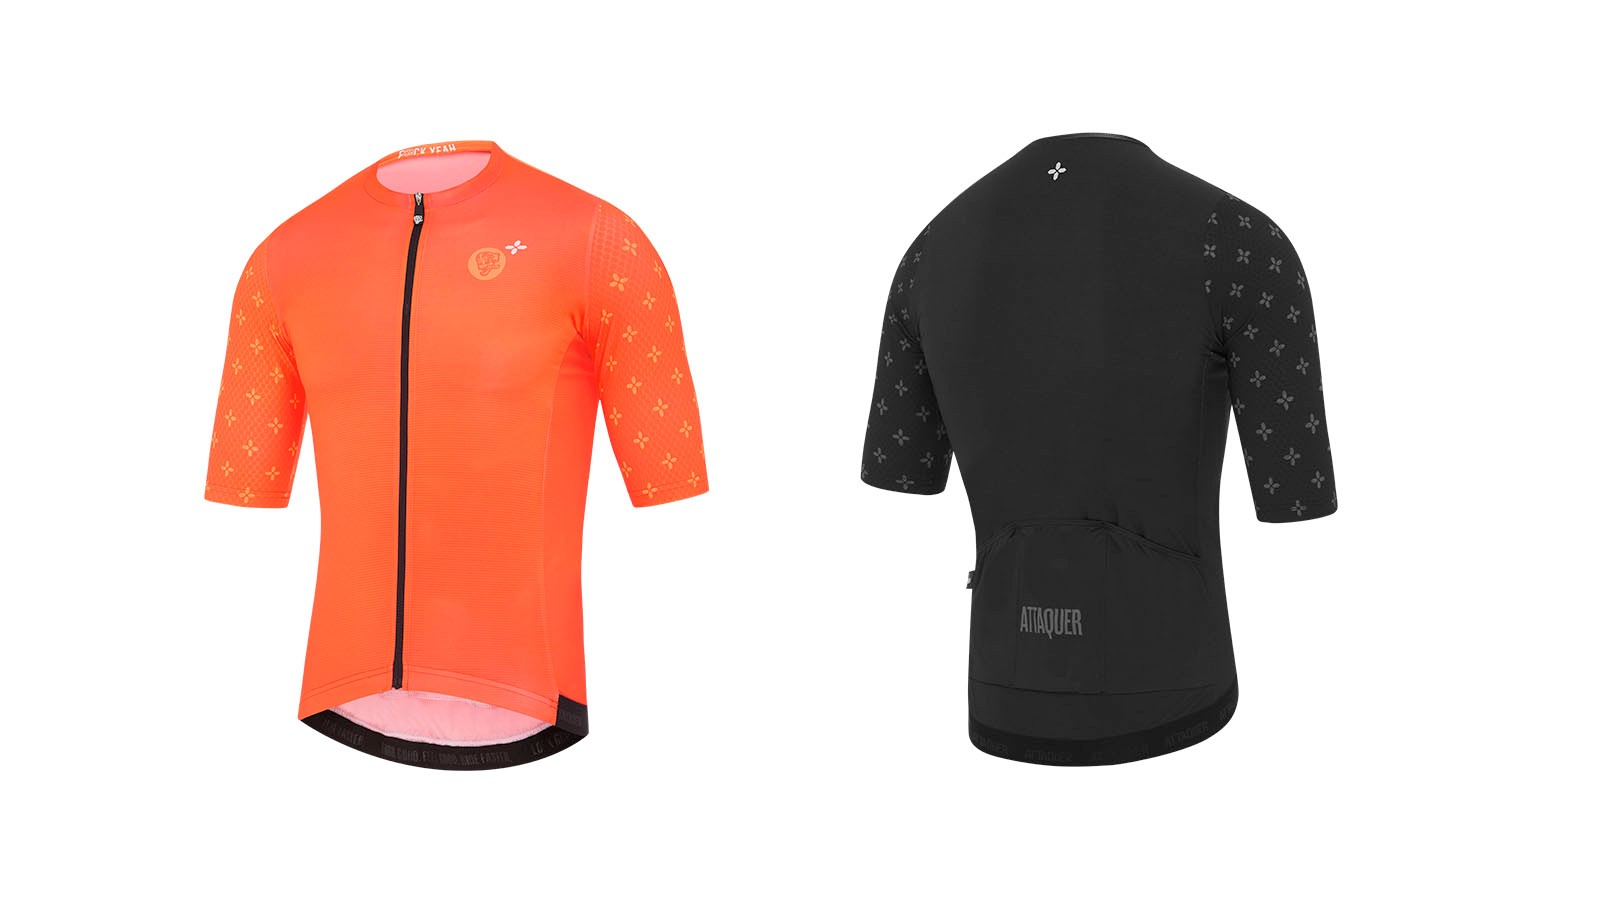 The jersey is said to help reduce the drag caused by the rider's body